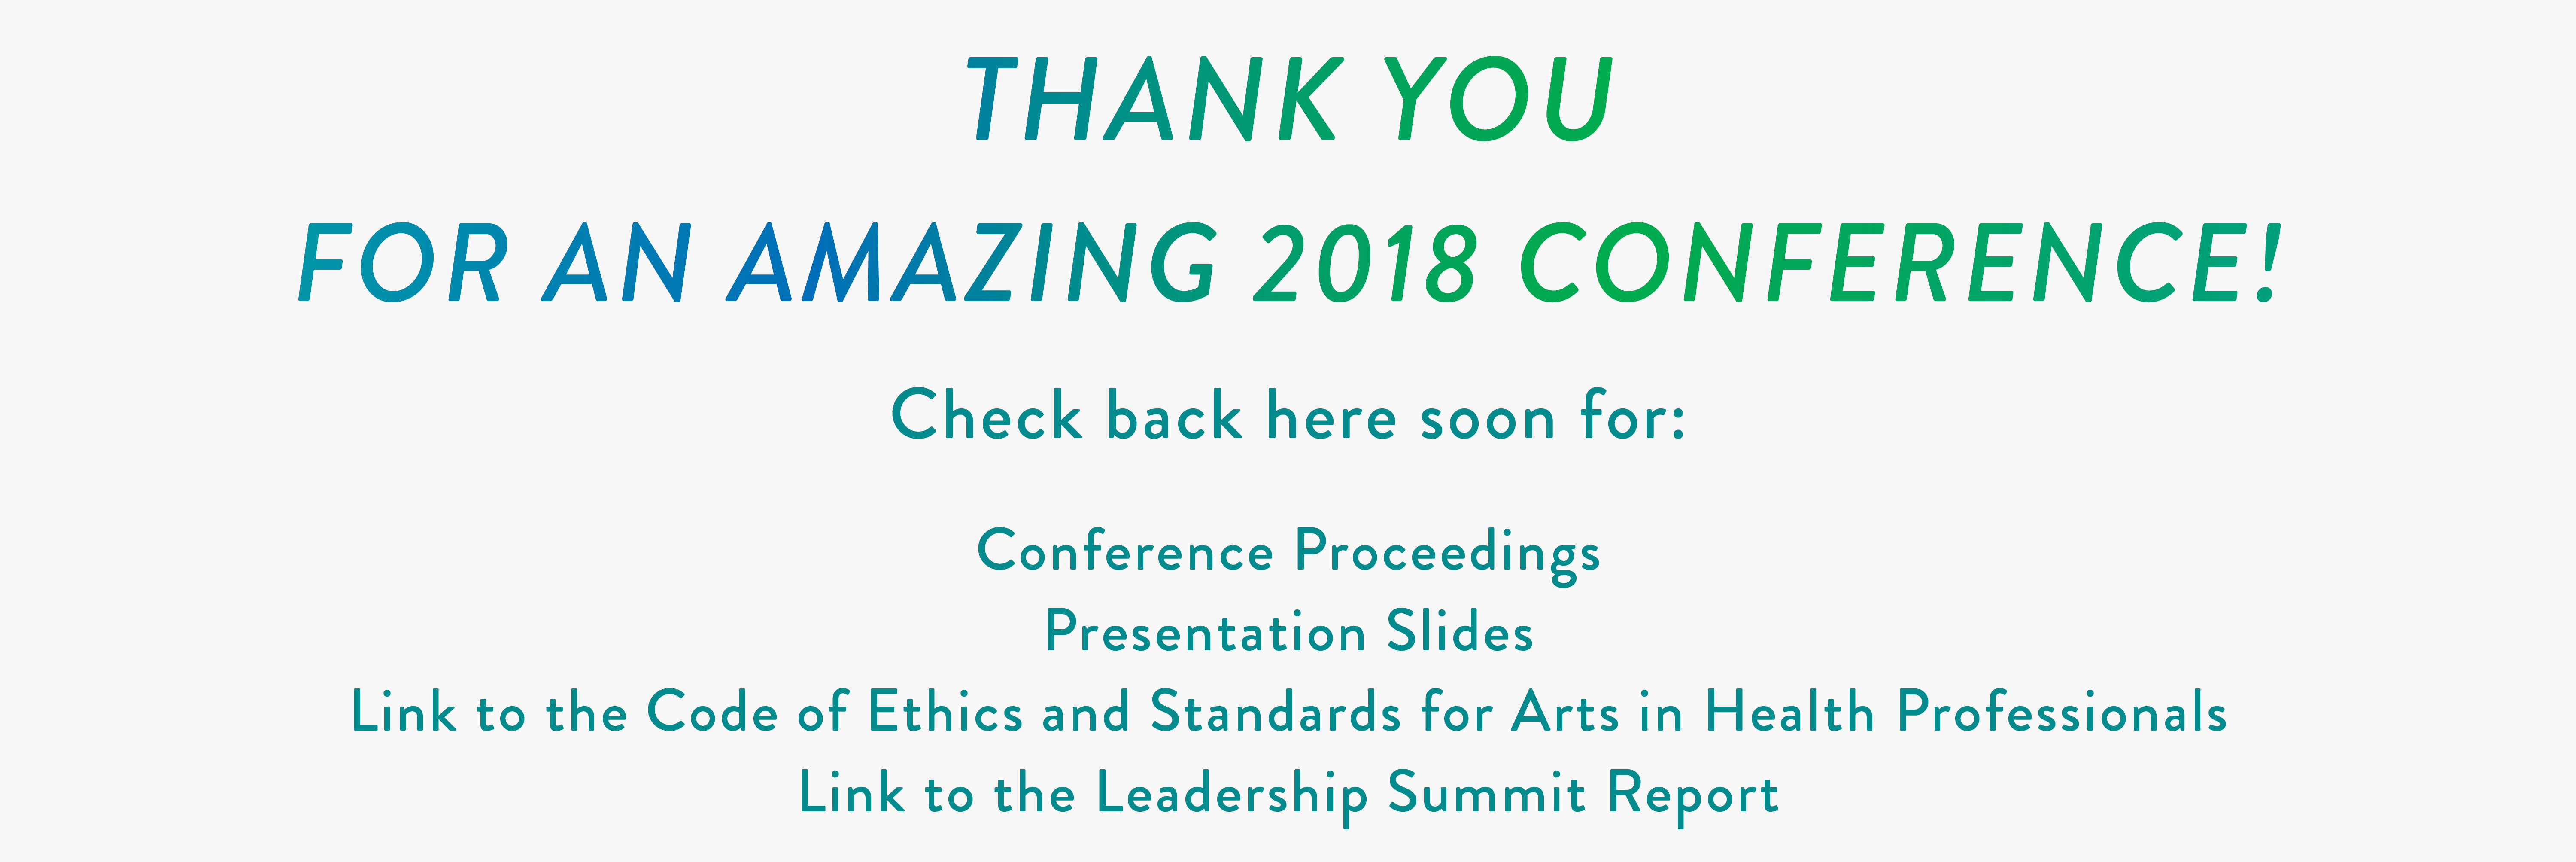 THANK YOU FOR AN AMAZING 2018 CONFERENCE! Check back here soon for: Conference Proceedings Presentation Slides Link to the Code of Ethics and Standards for Arts in Health Professionals Link to the Leadership Summit Report